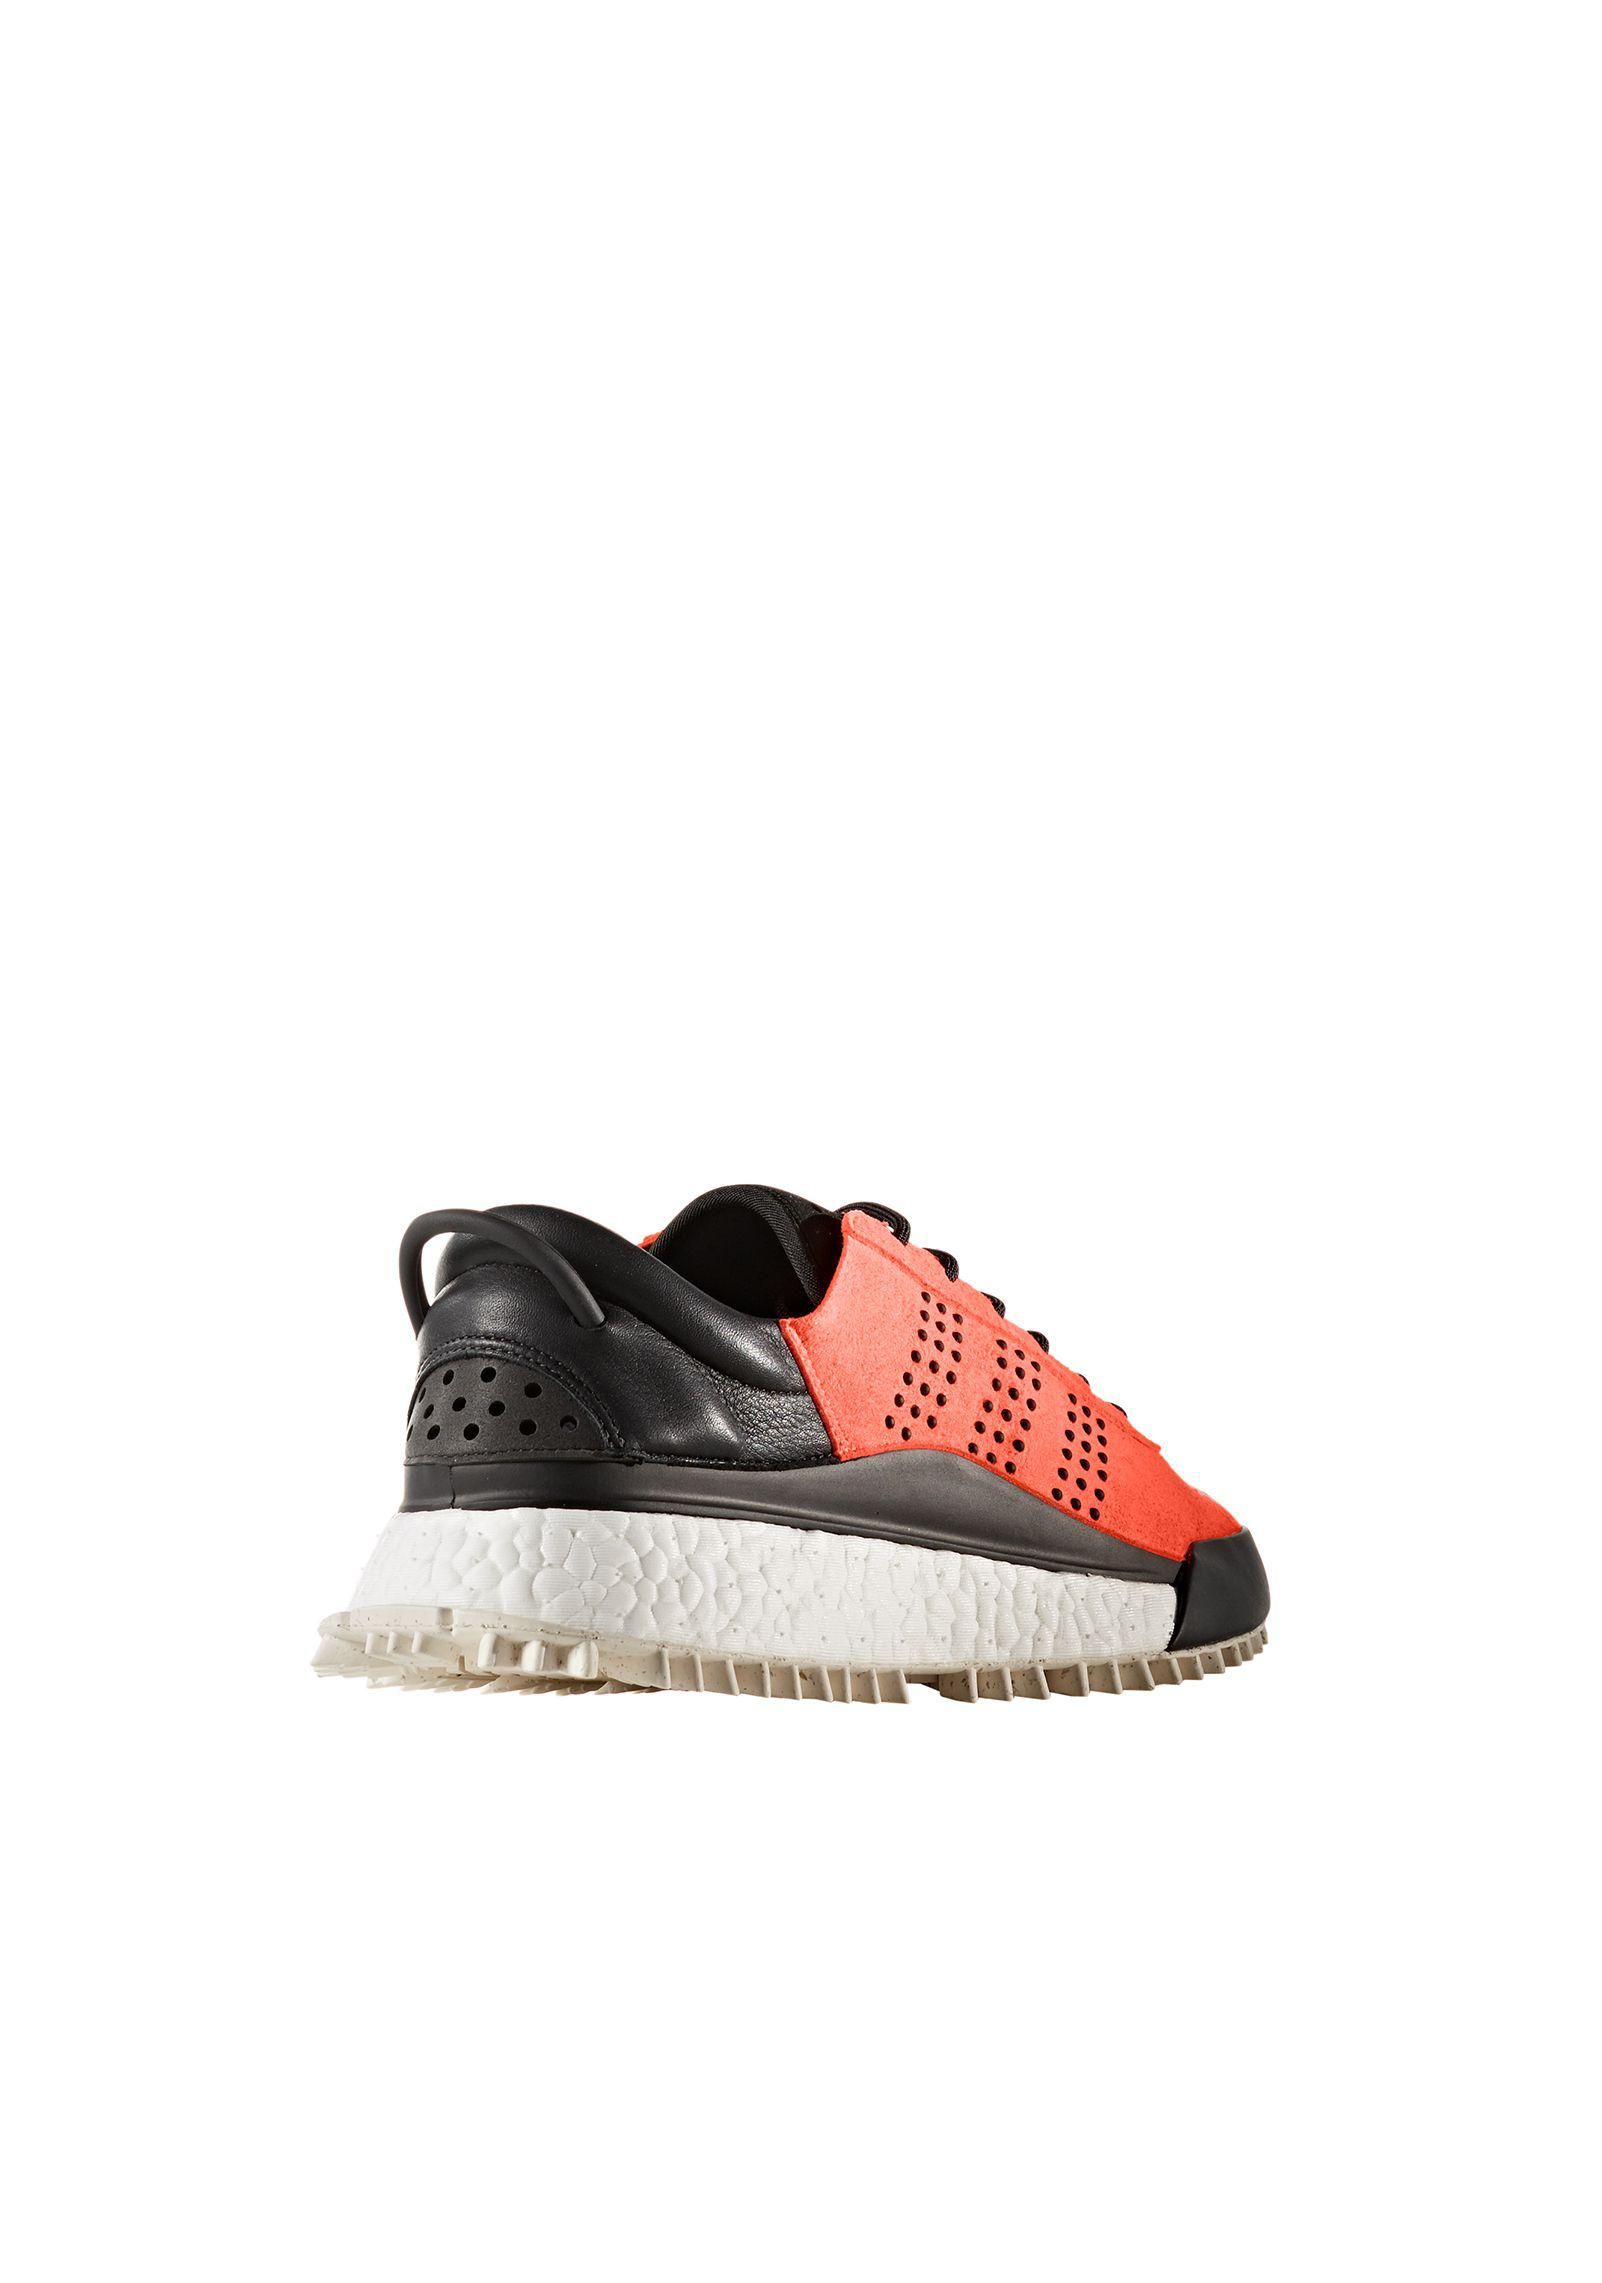 reputable site c1ba6 44ed4 Lyst - Alexander Wang Adidas Originals By Aw Hike Lo Shoes i